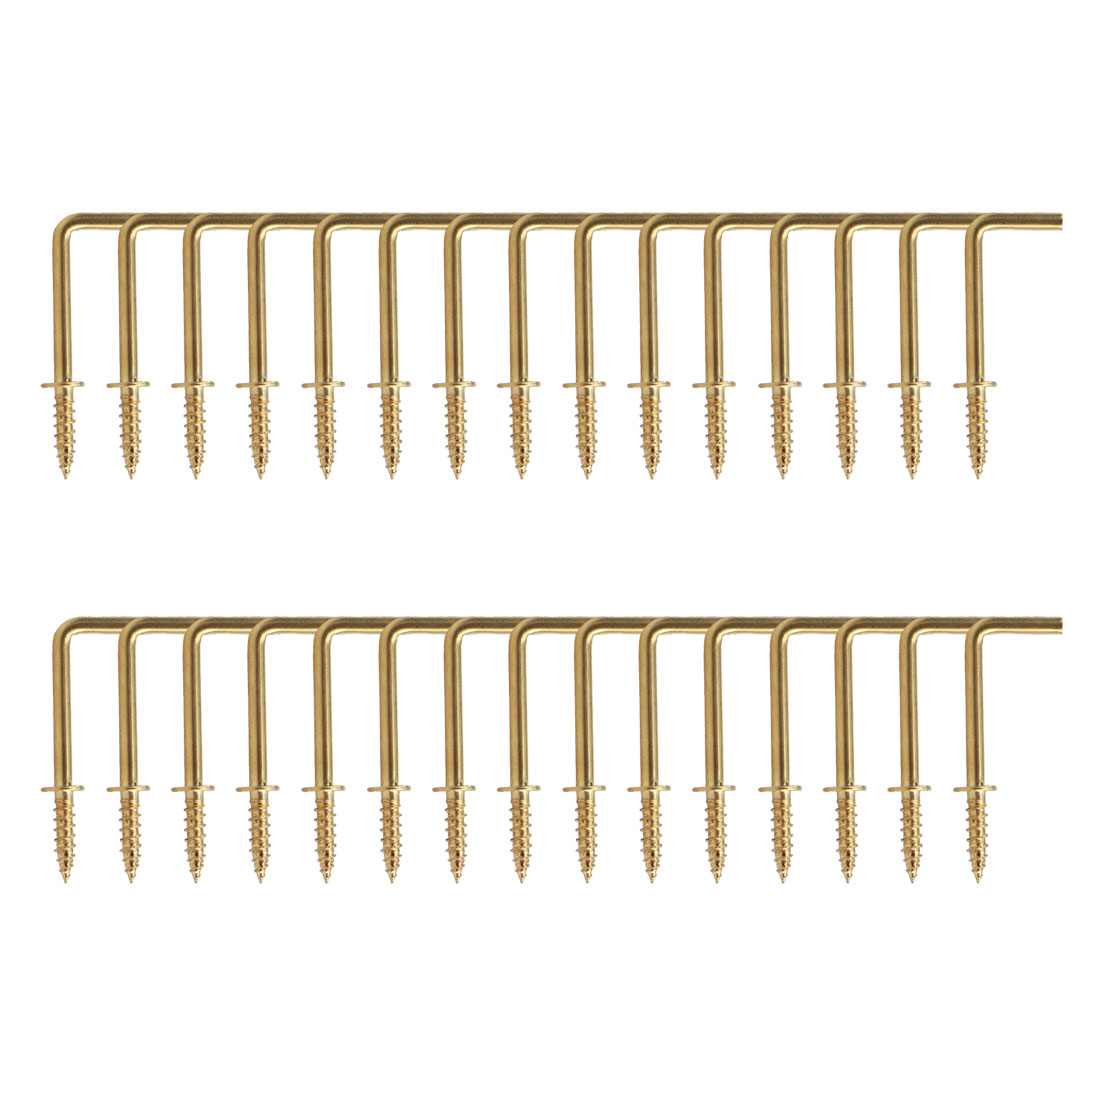 30pcs Cup Square Hook 2 Inch Brass Plating Coated Hanger Holder Gold Tone